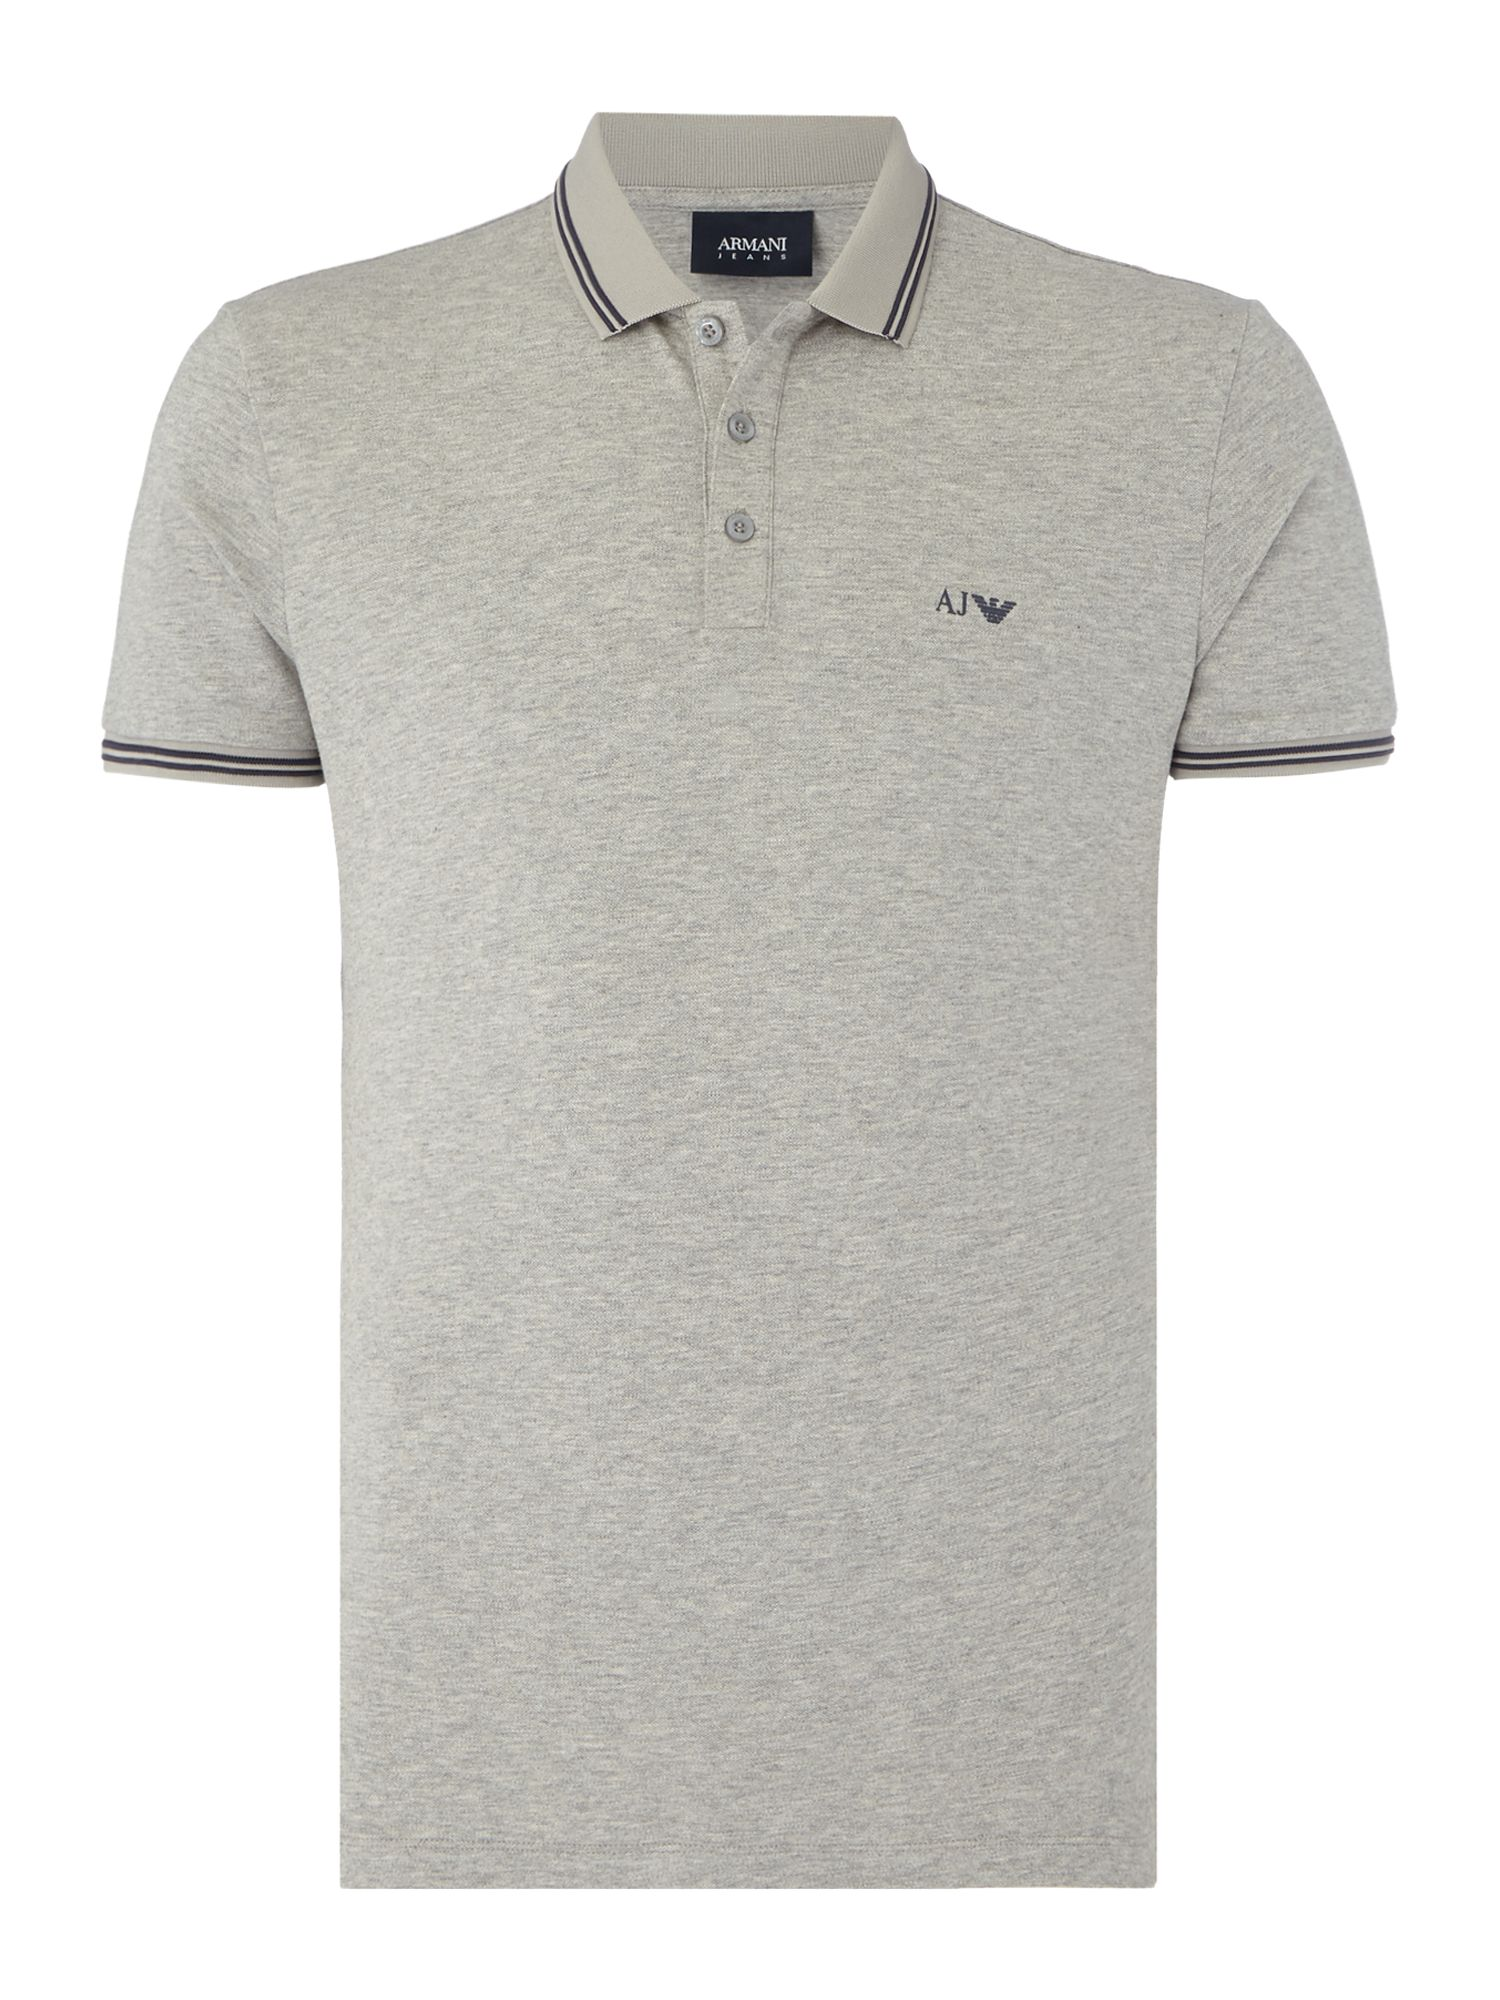 Men's Armani Jeans Regular fit tipped logo polo, Grey Marl